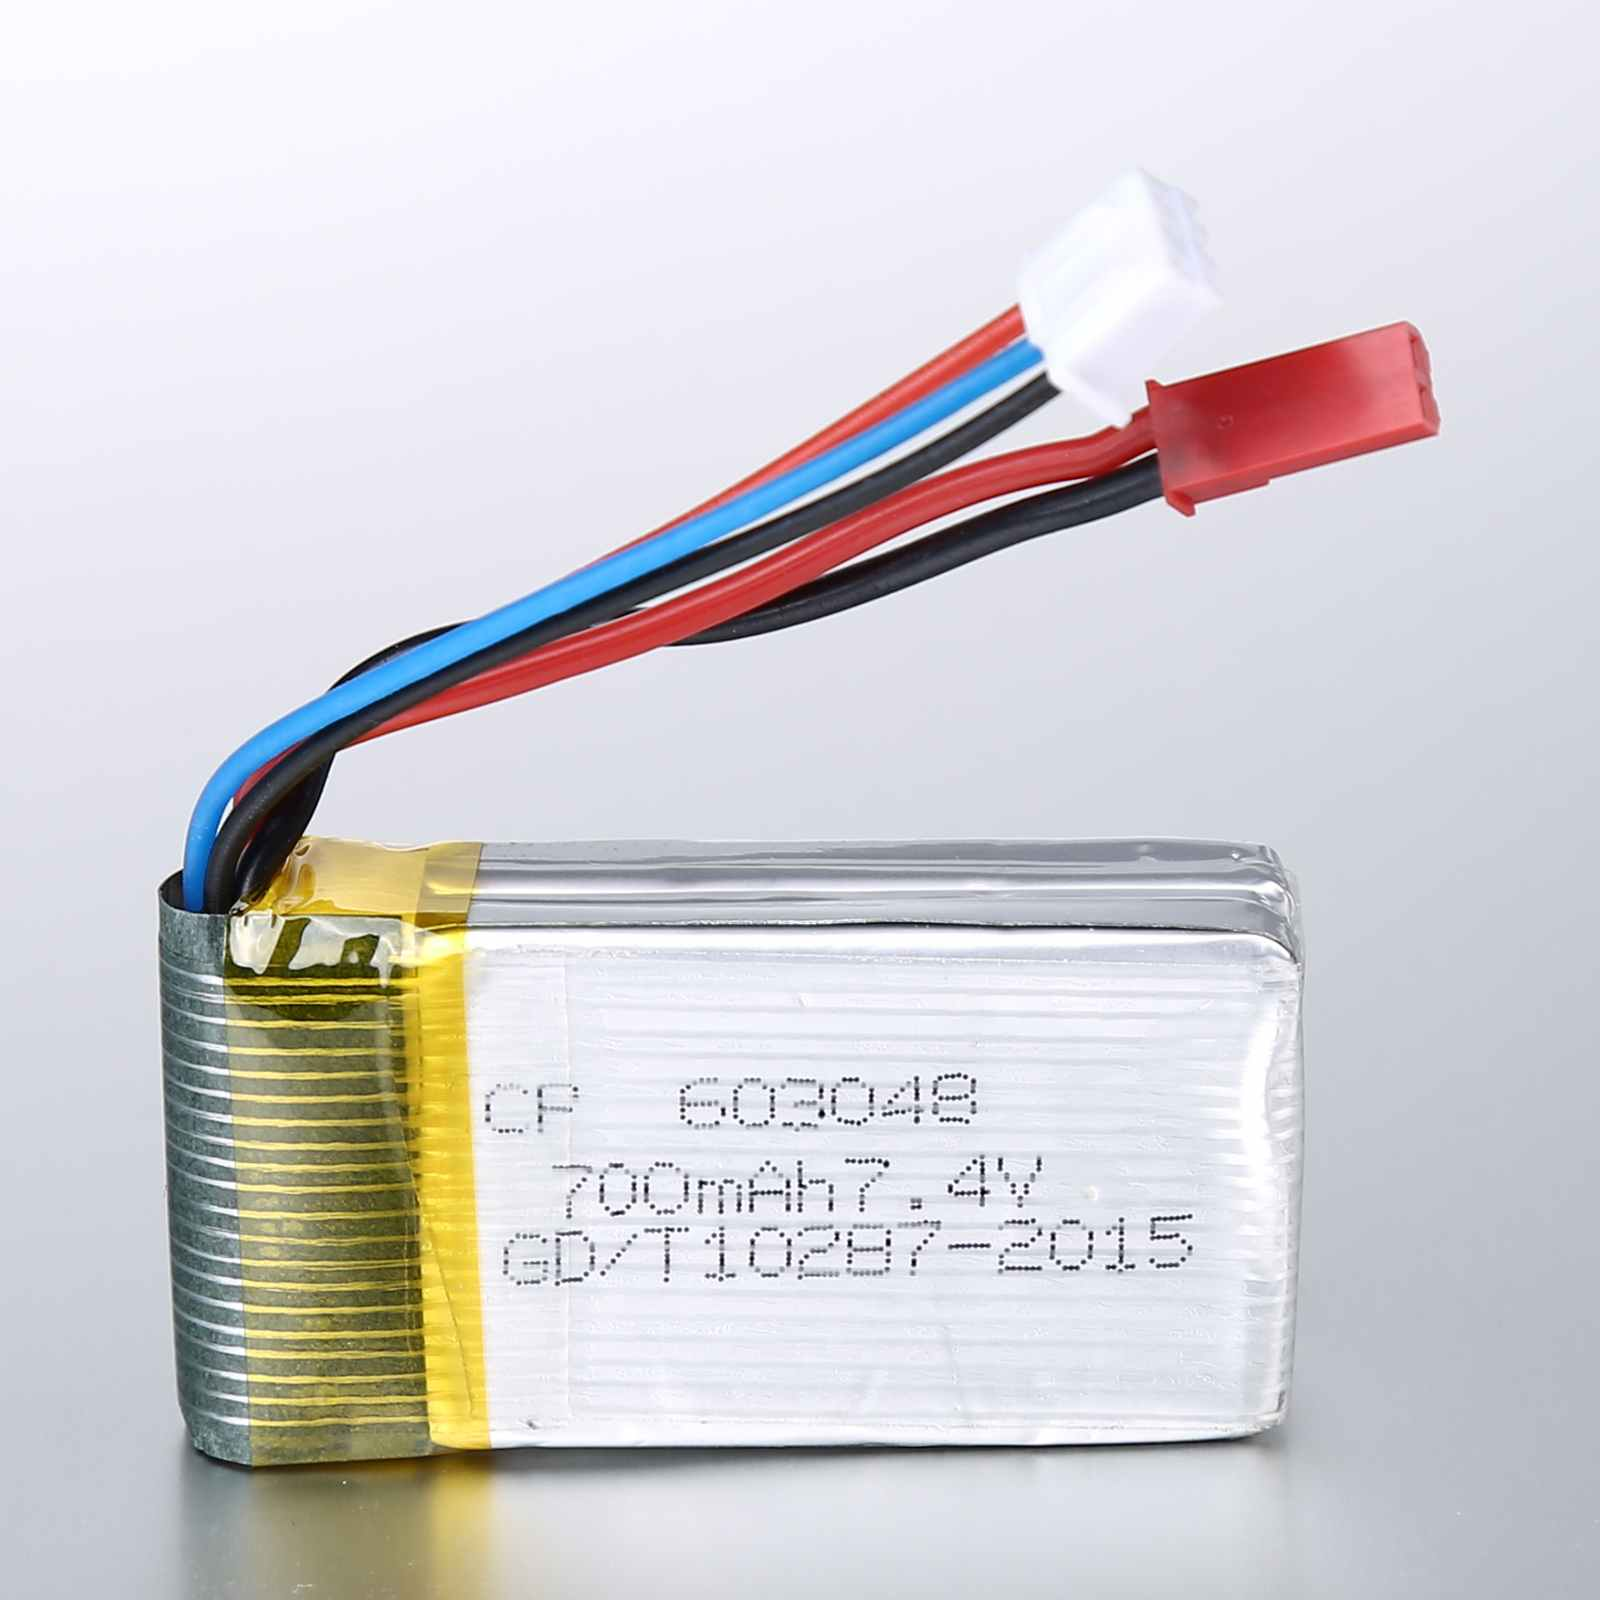 High Quality Lipo Battery Replacement 7.4V 700mAh Lipo Battery Spare Parts for MJX X600 RC Quadcopter Helicopter набор шпателей для выравнивания archimedes stabi 4 шт